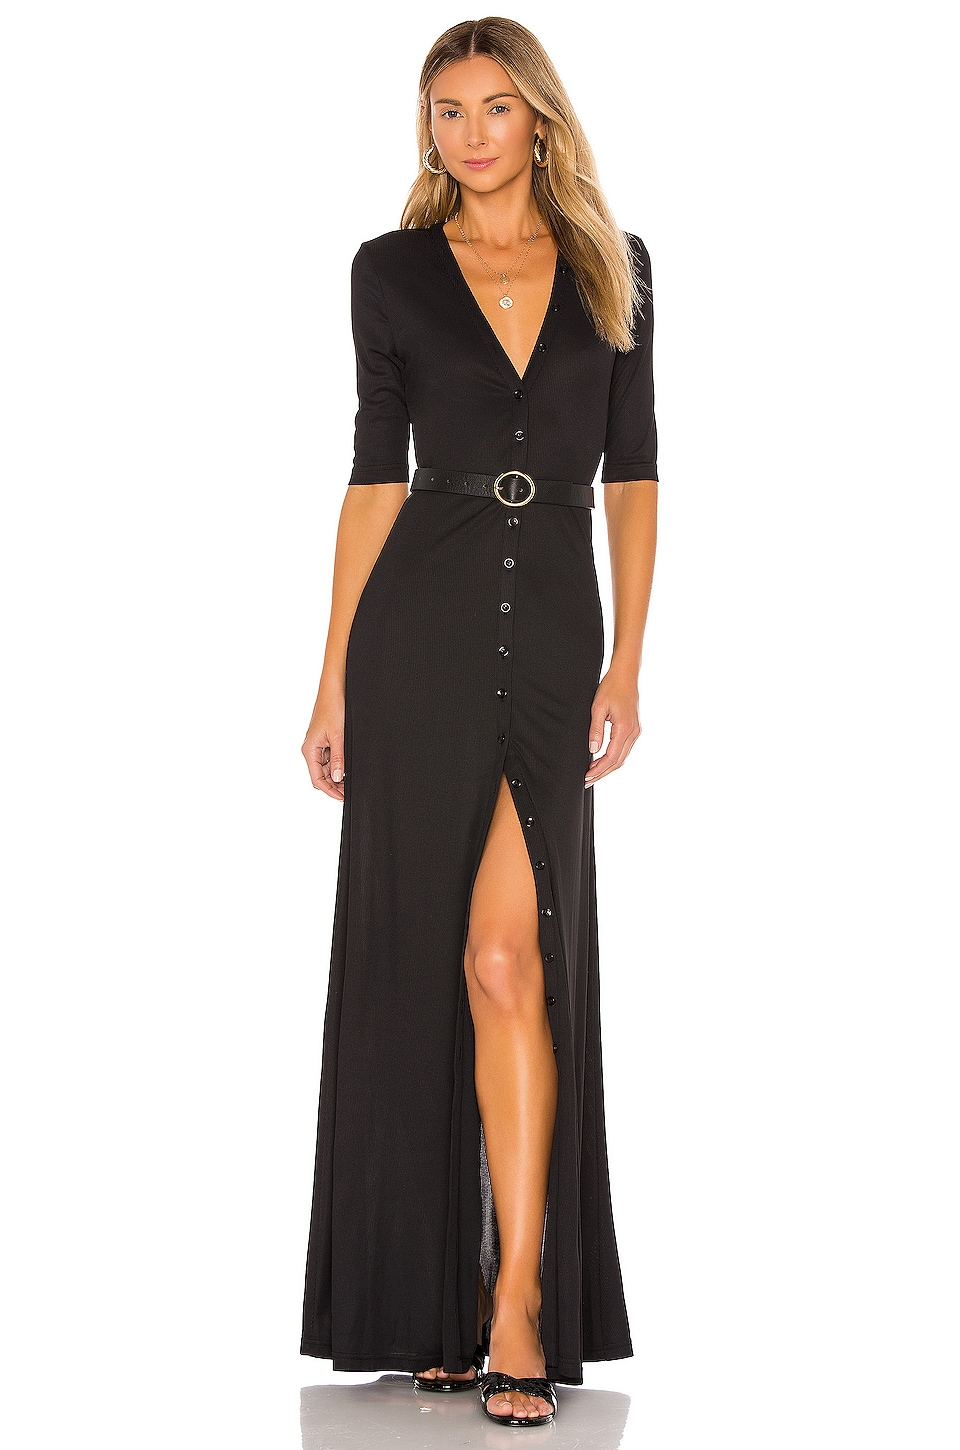 The Esperanza Maxi Dress             L'Academie                                                                                                       CA$ 226.98 27